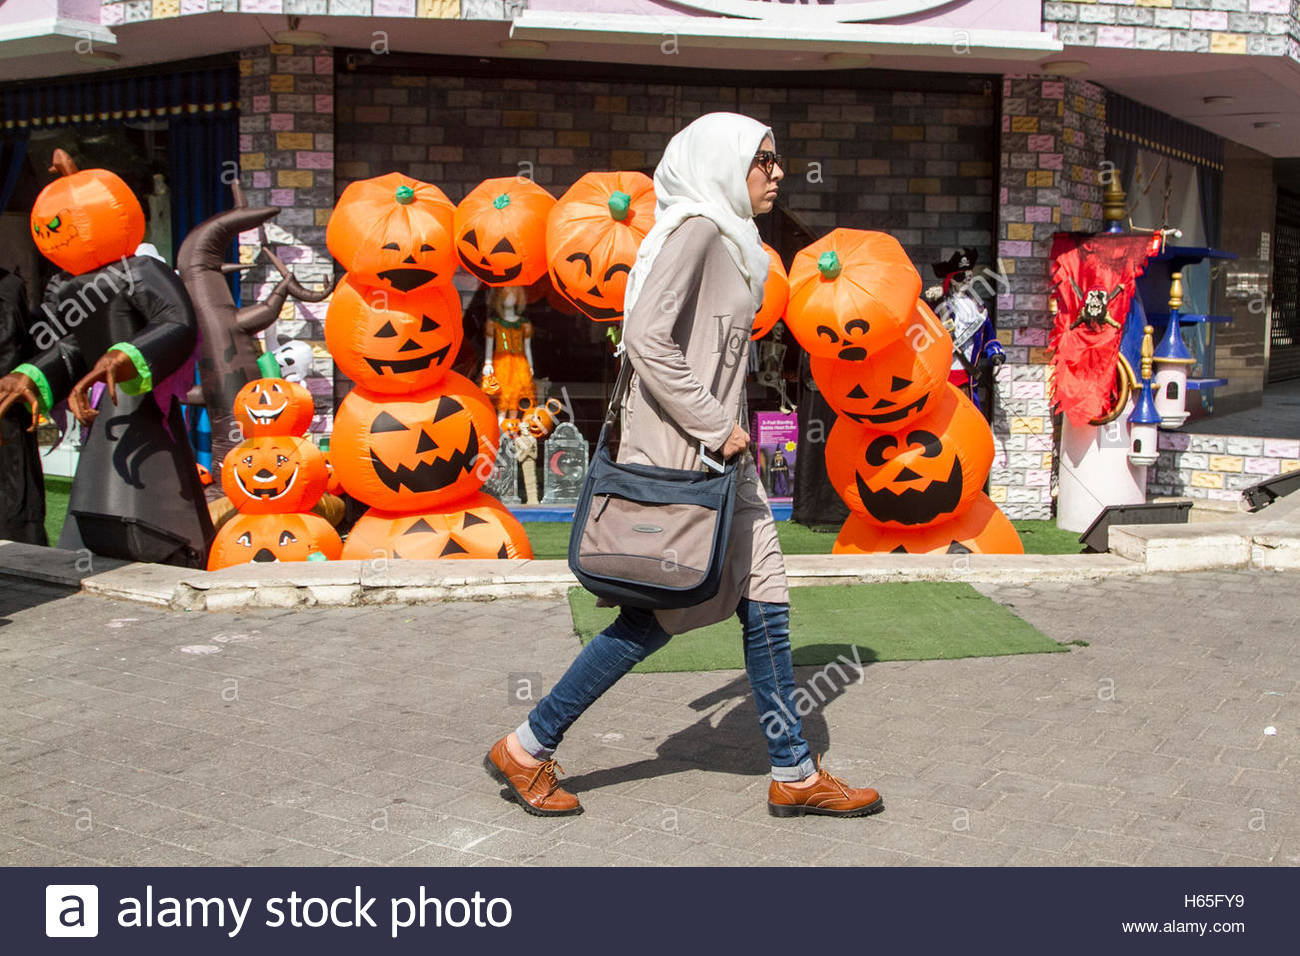 A Shop Selling Halloween Costumes And Decorations Including Masks Of  Pirates And Pumpkins As Beirut Gets Into The Halloween Spirit Credit: Amer  ...